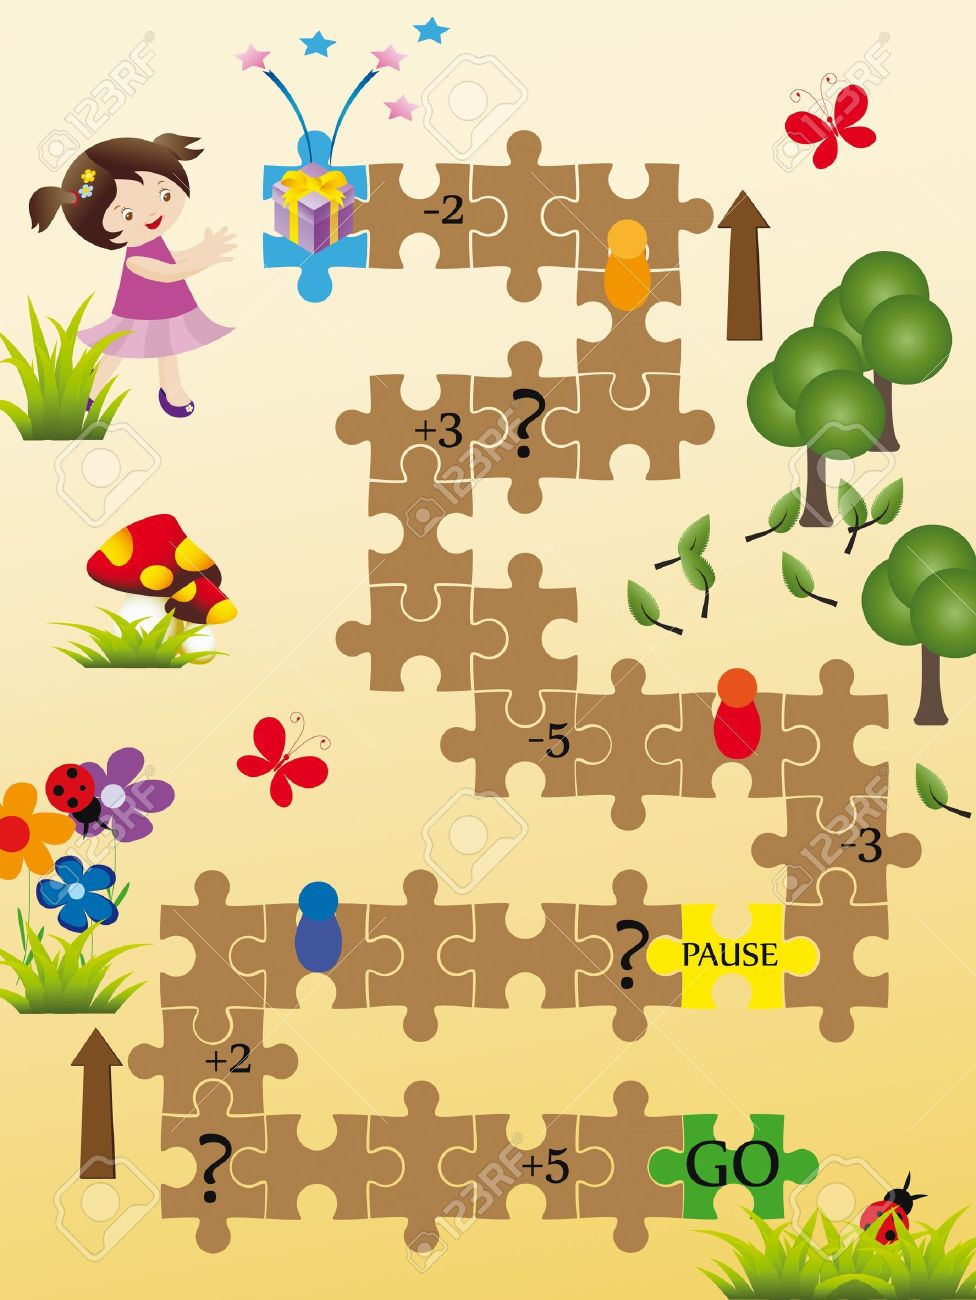 Nice board game for kids Stock Vector - 9383304